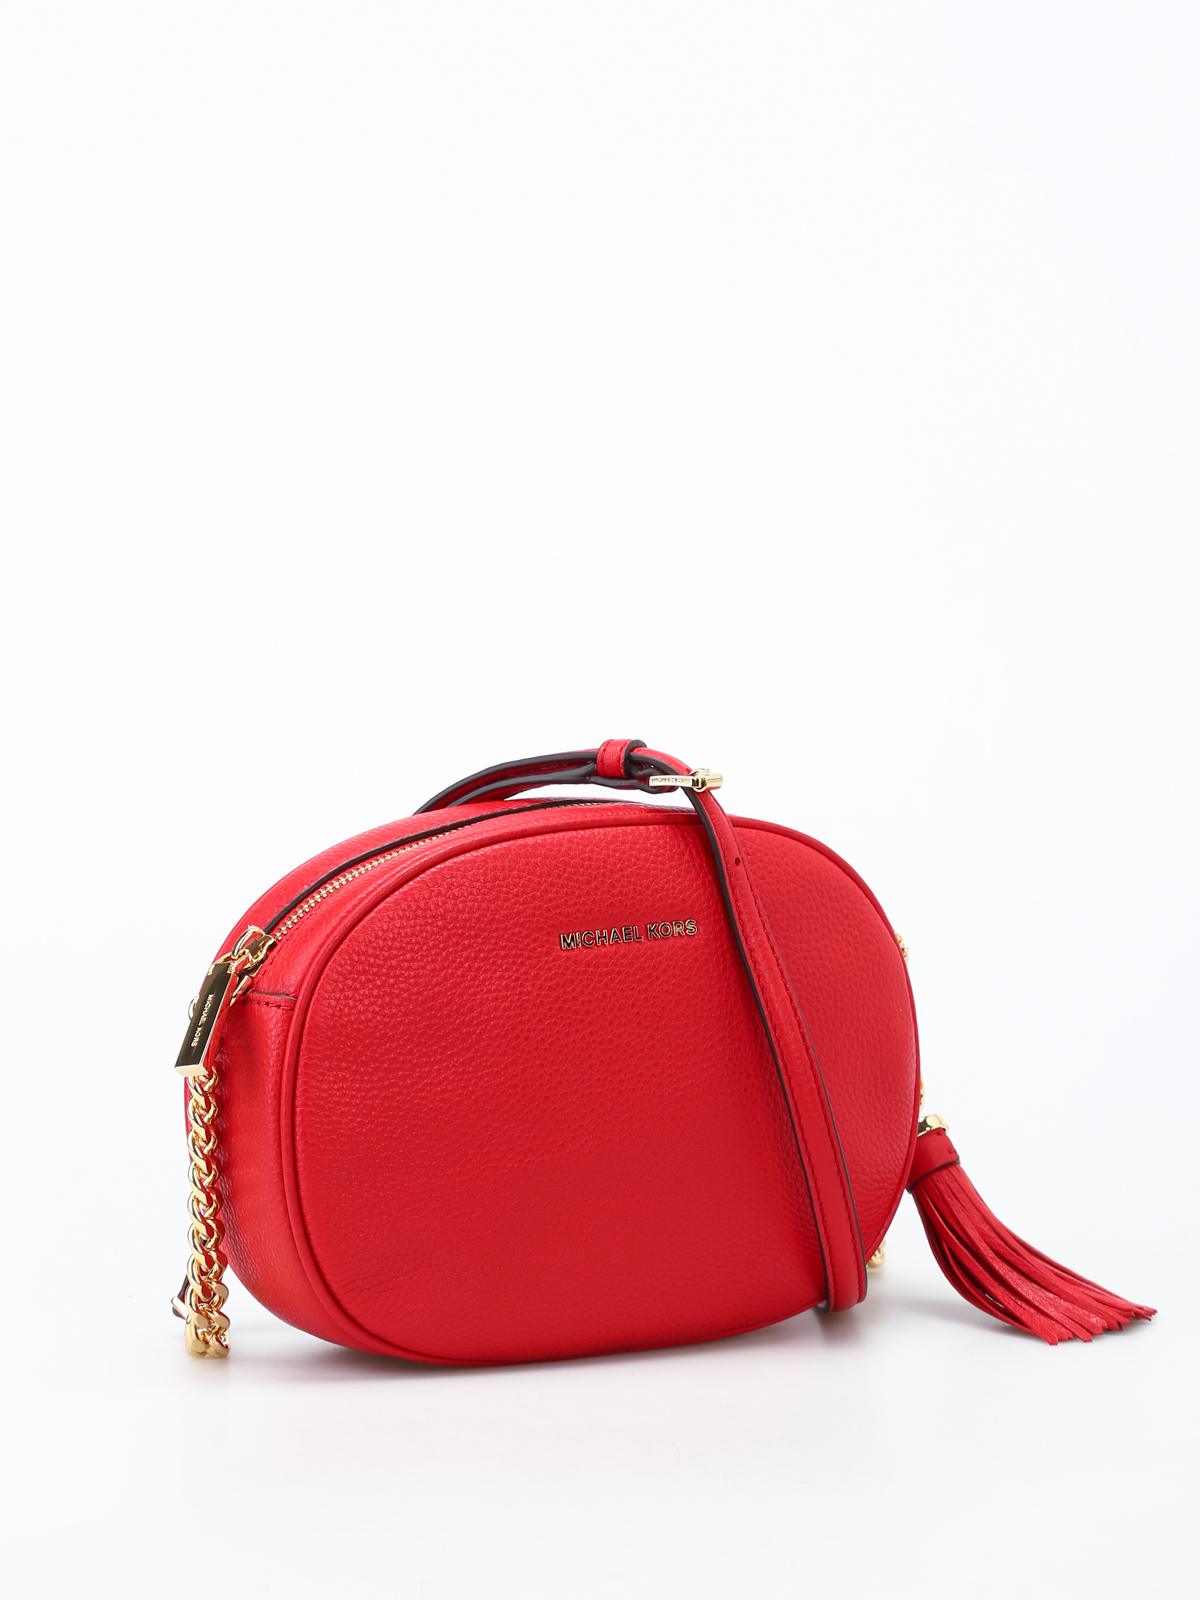 3cba013f6df9 MICHAEL KORS  cross body bags online - Ginny bright red leather crossbody